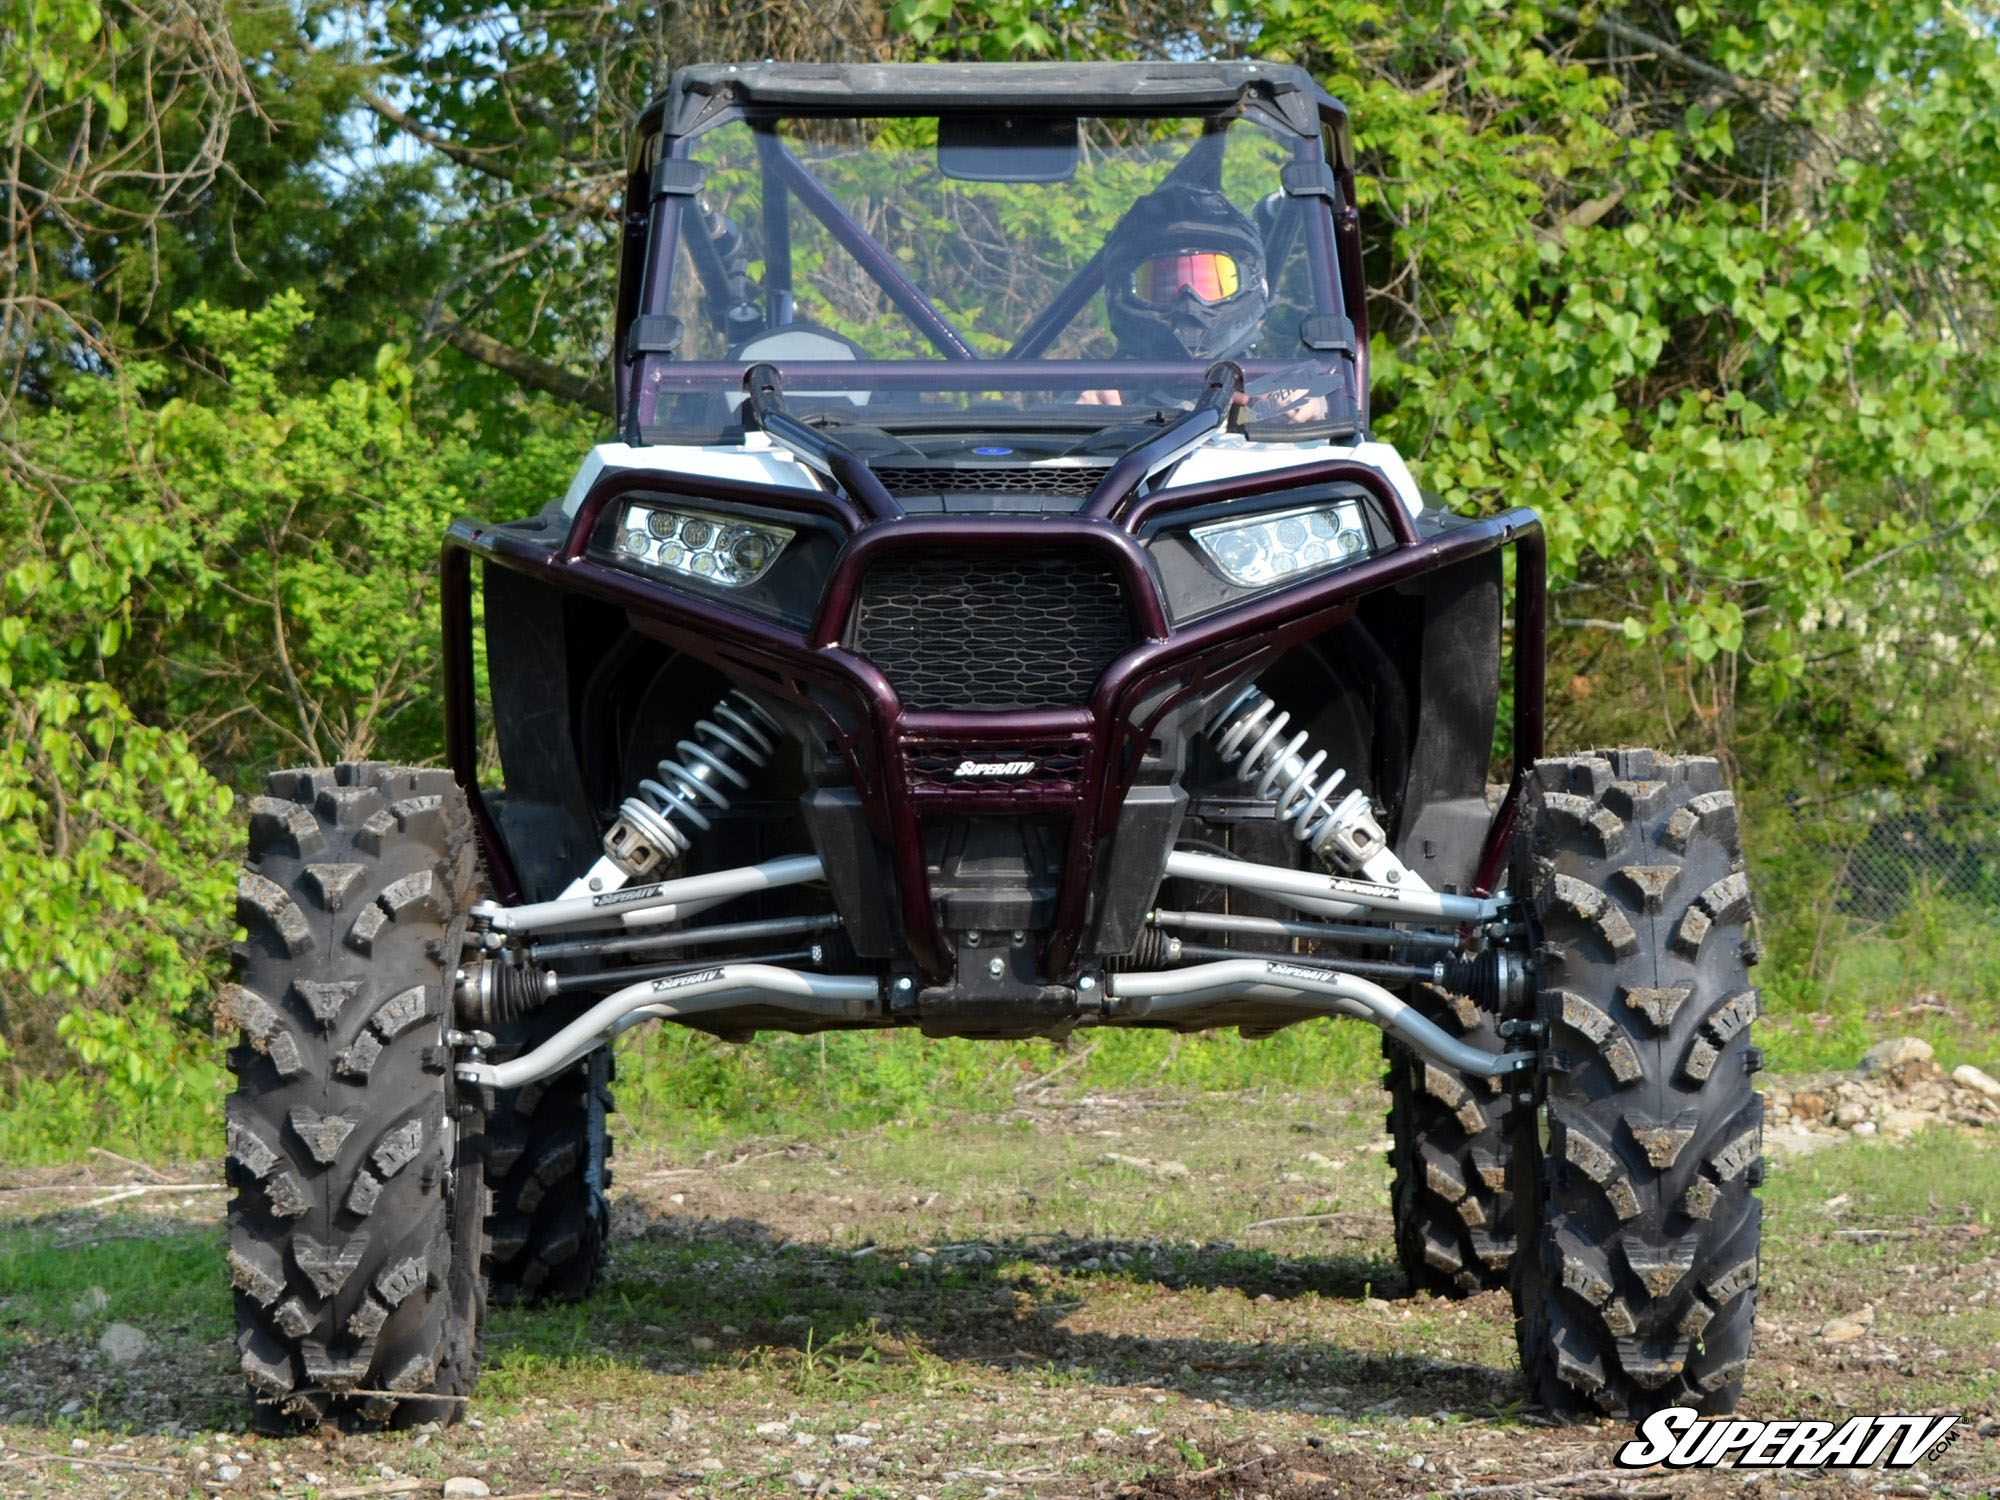 polaris-rzr-1000-6-portal-gear-lift-03.jpg